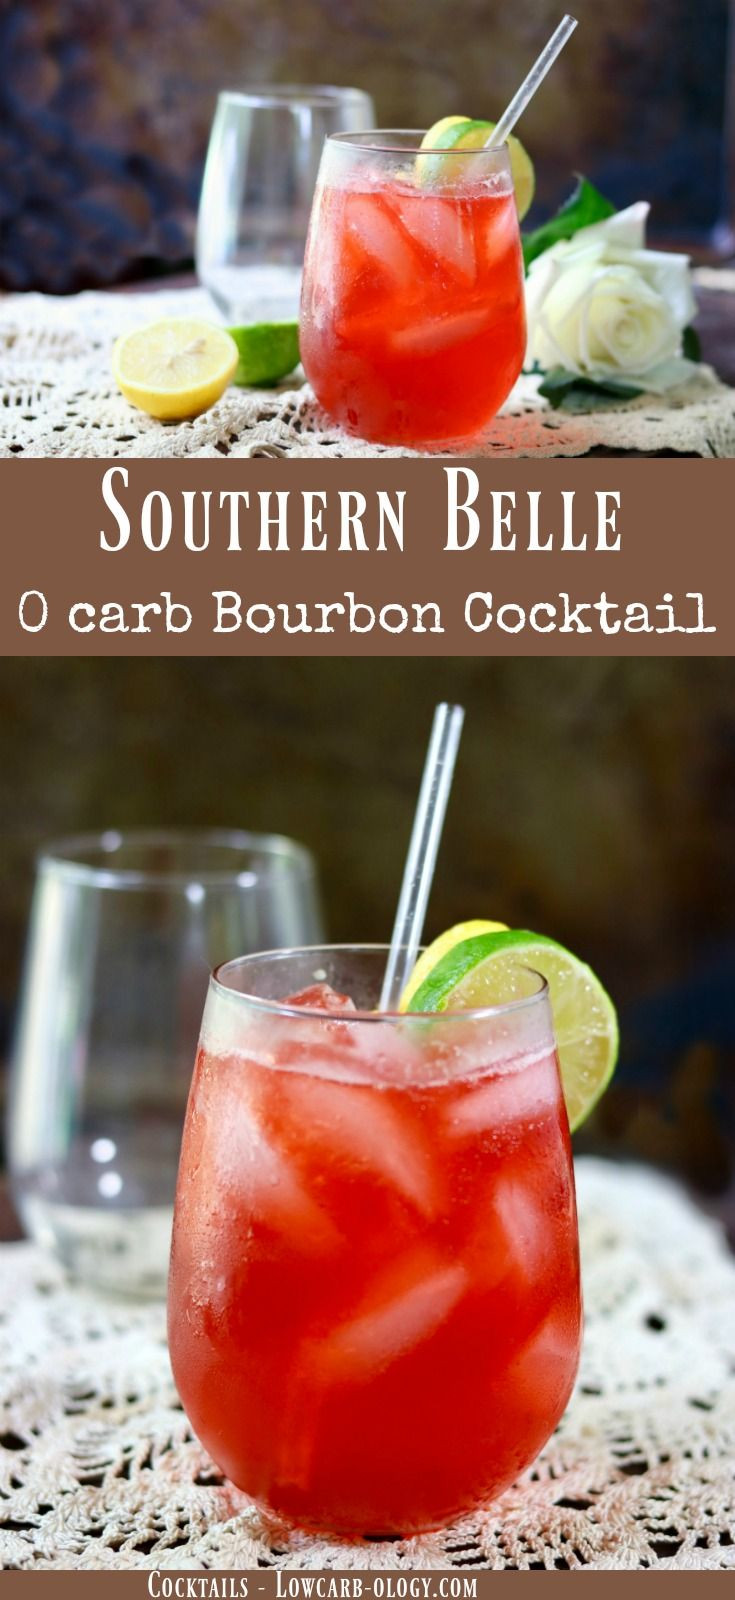 Summer Bourbon Drinks  Summer Bourbon Cocktail The Southern Belle lowcarb ology